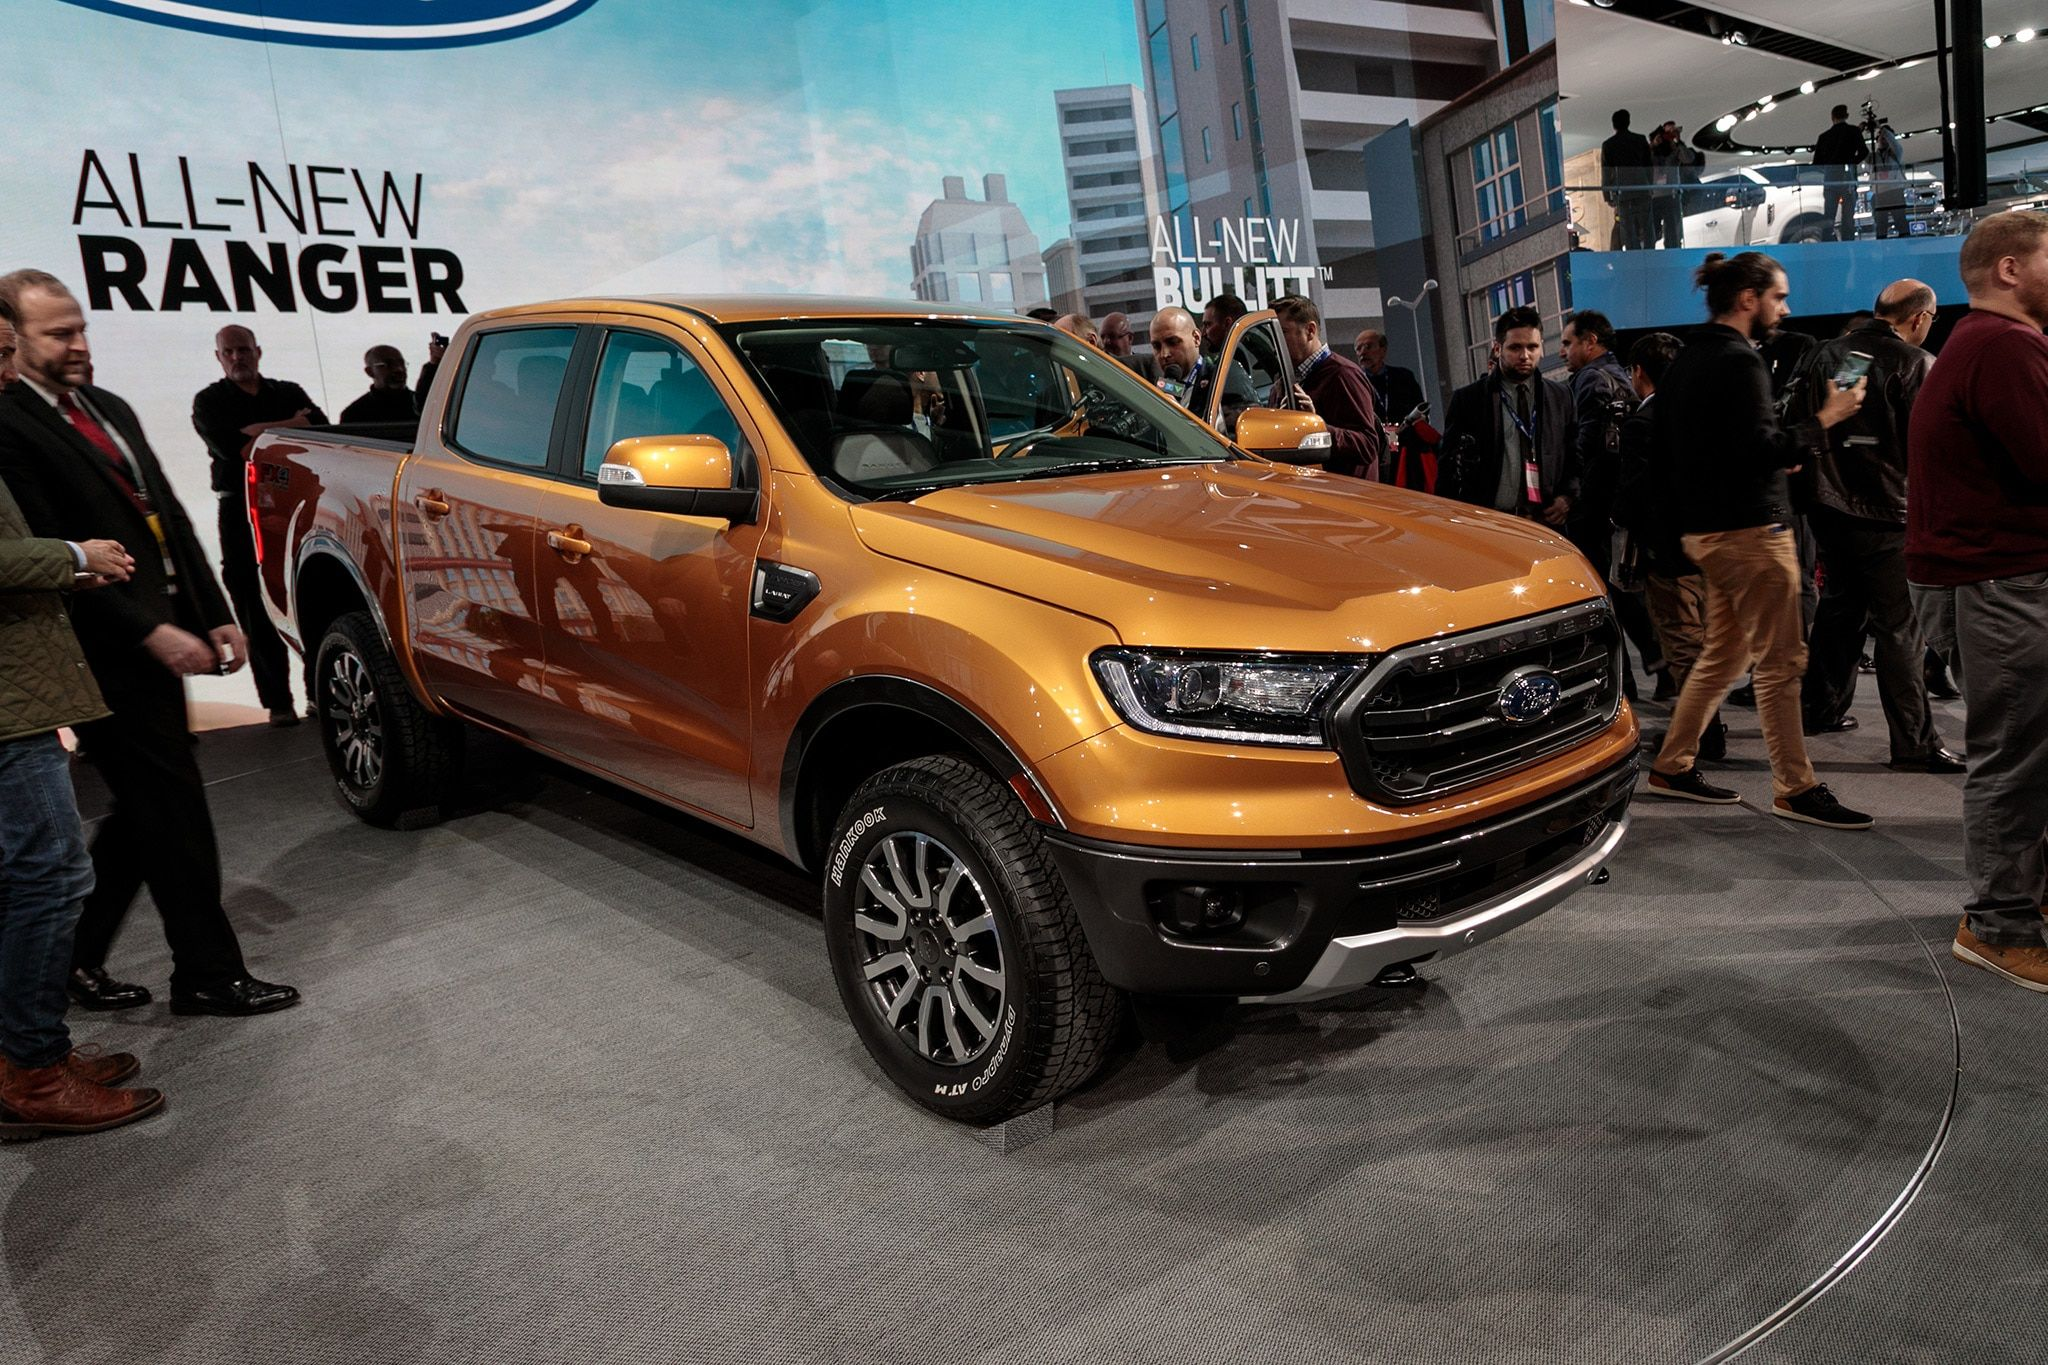 2019 Ford Ranger First Look Welcome Home Ford Ranger 2019 Ford Ranger Ford Ranger Models